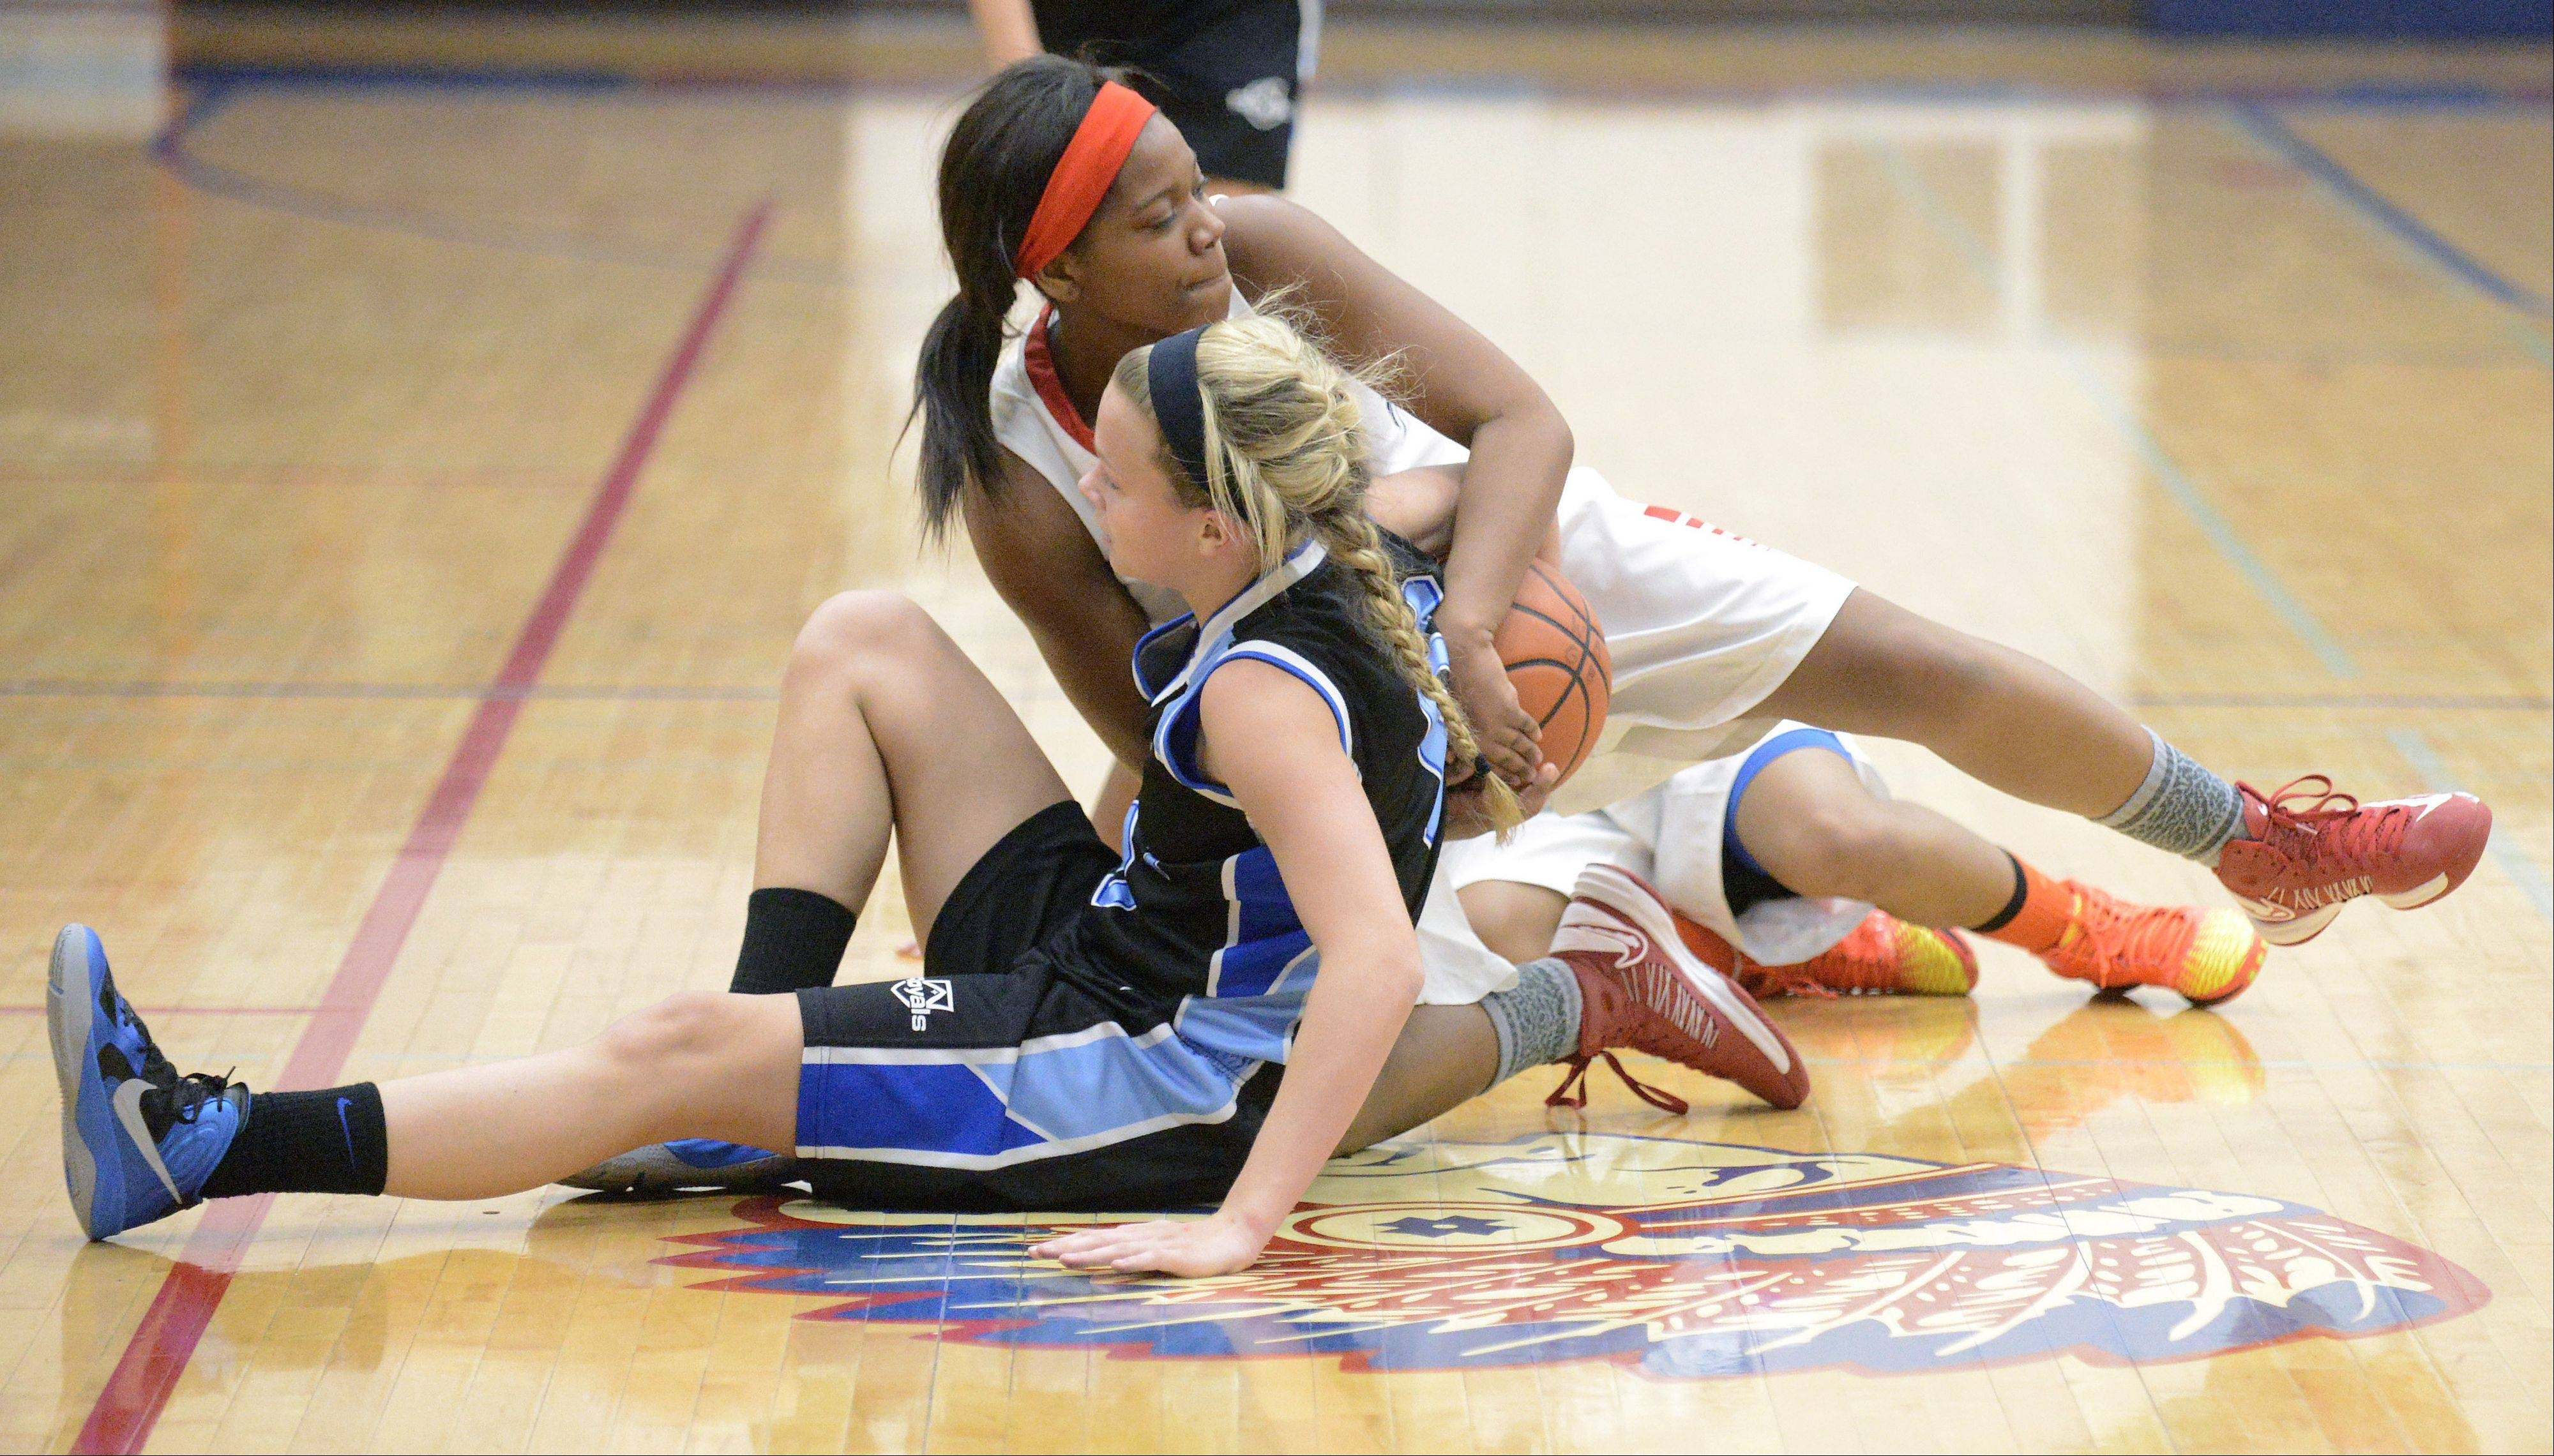 Rosary's Quincy Kellett and West Aurora's Ashley Williams wrestle for a loose ball in the second quarter on Tuesday, December 3.